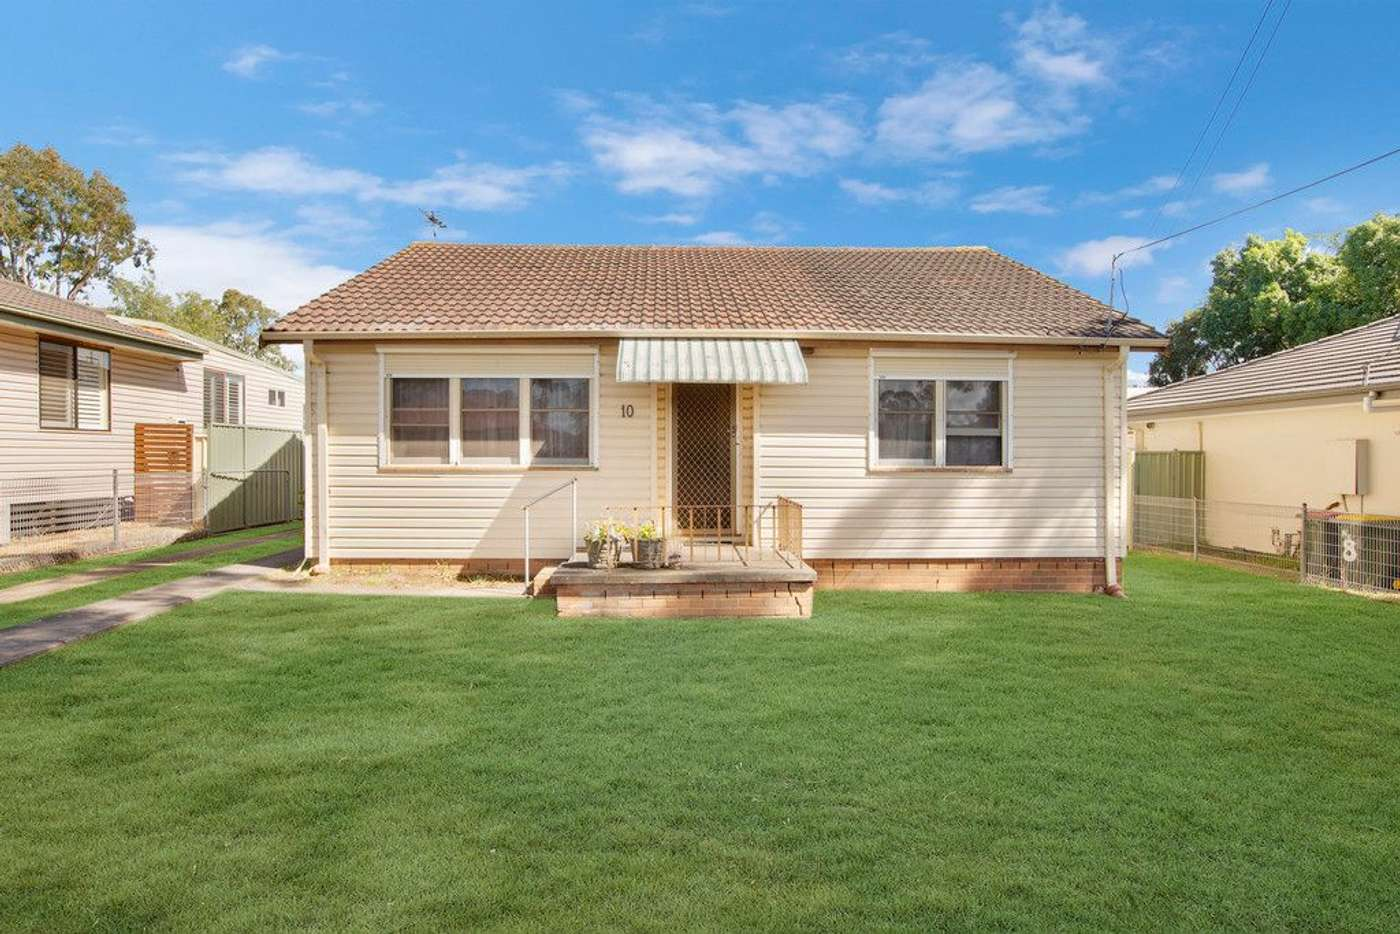 Main view of Homely house listing, 10 Percy Street, Marayong NSW 2148